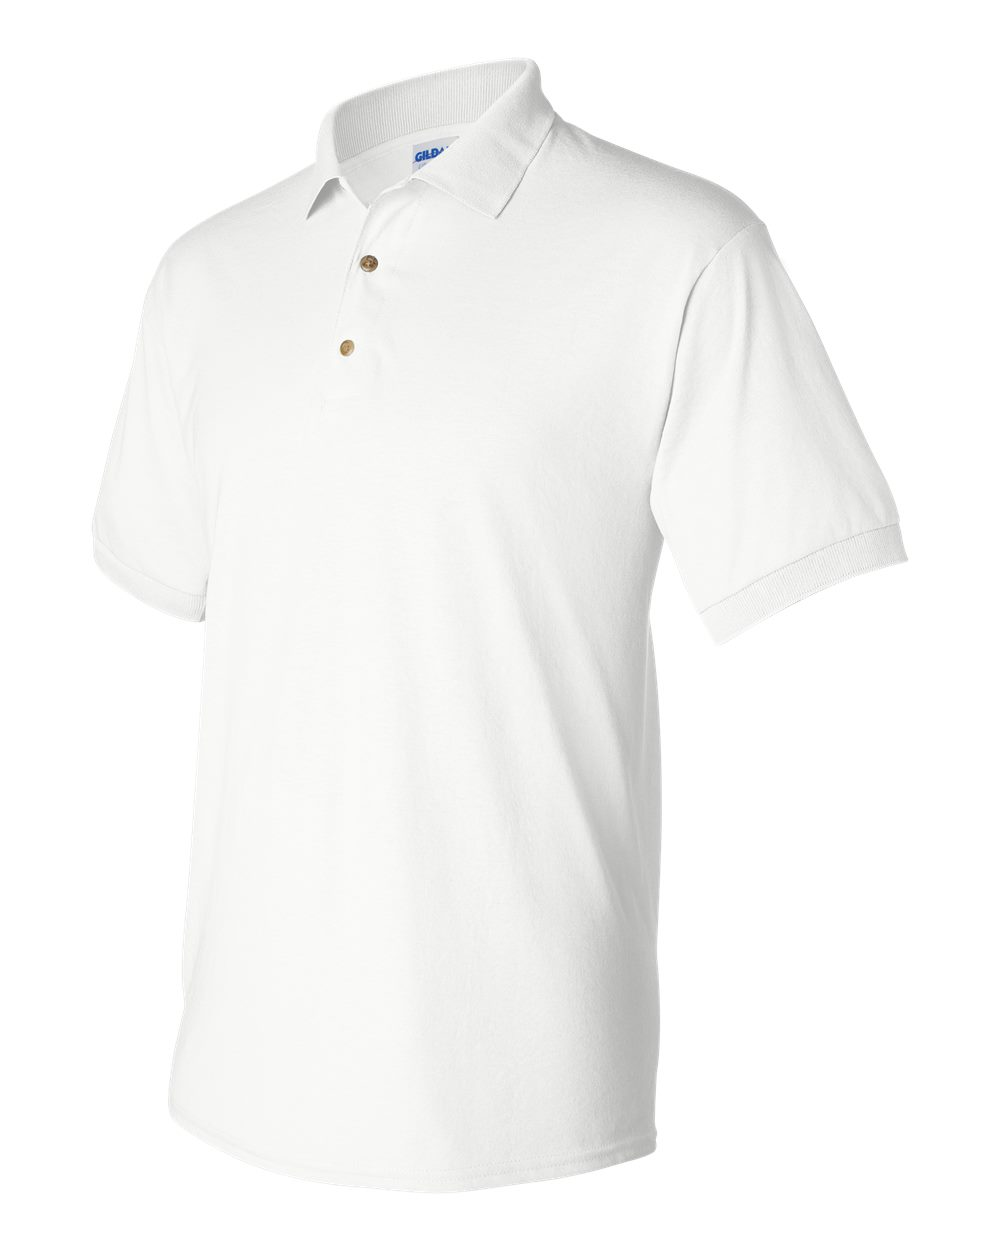 Clearance Hoffman White Polo